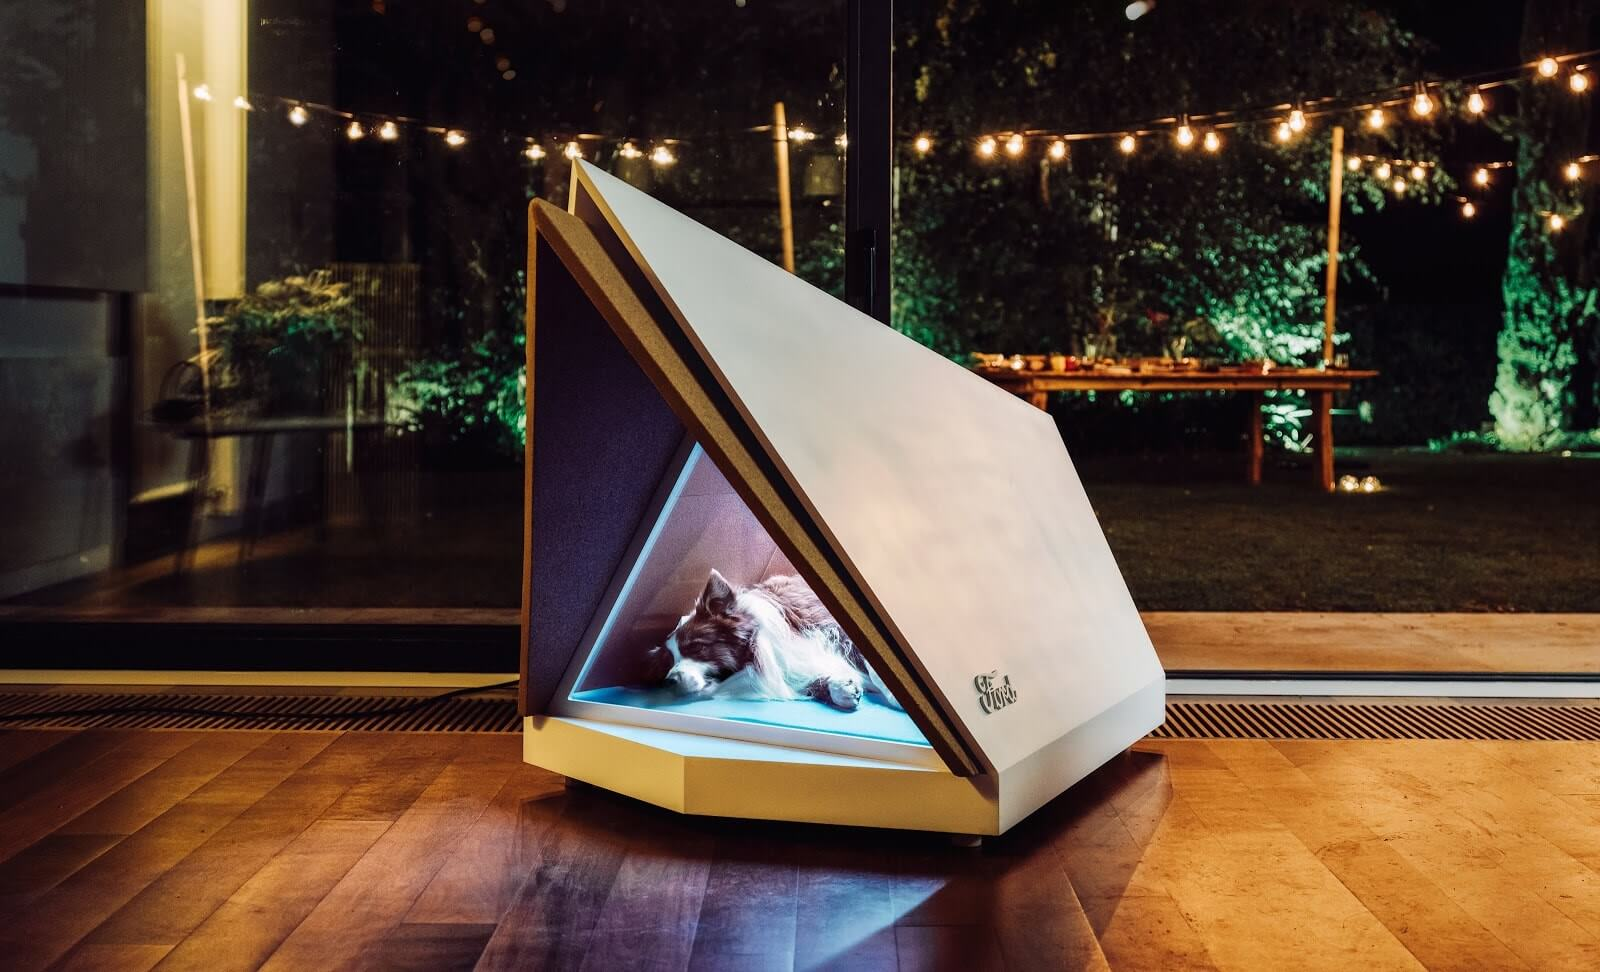 Ford uses vehicle technology to create a noise-cancelling dog kennel